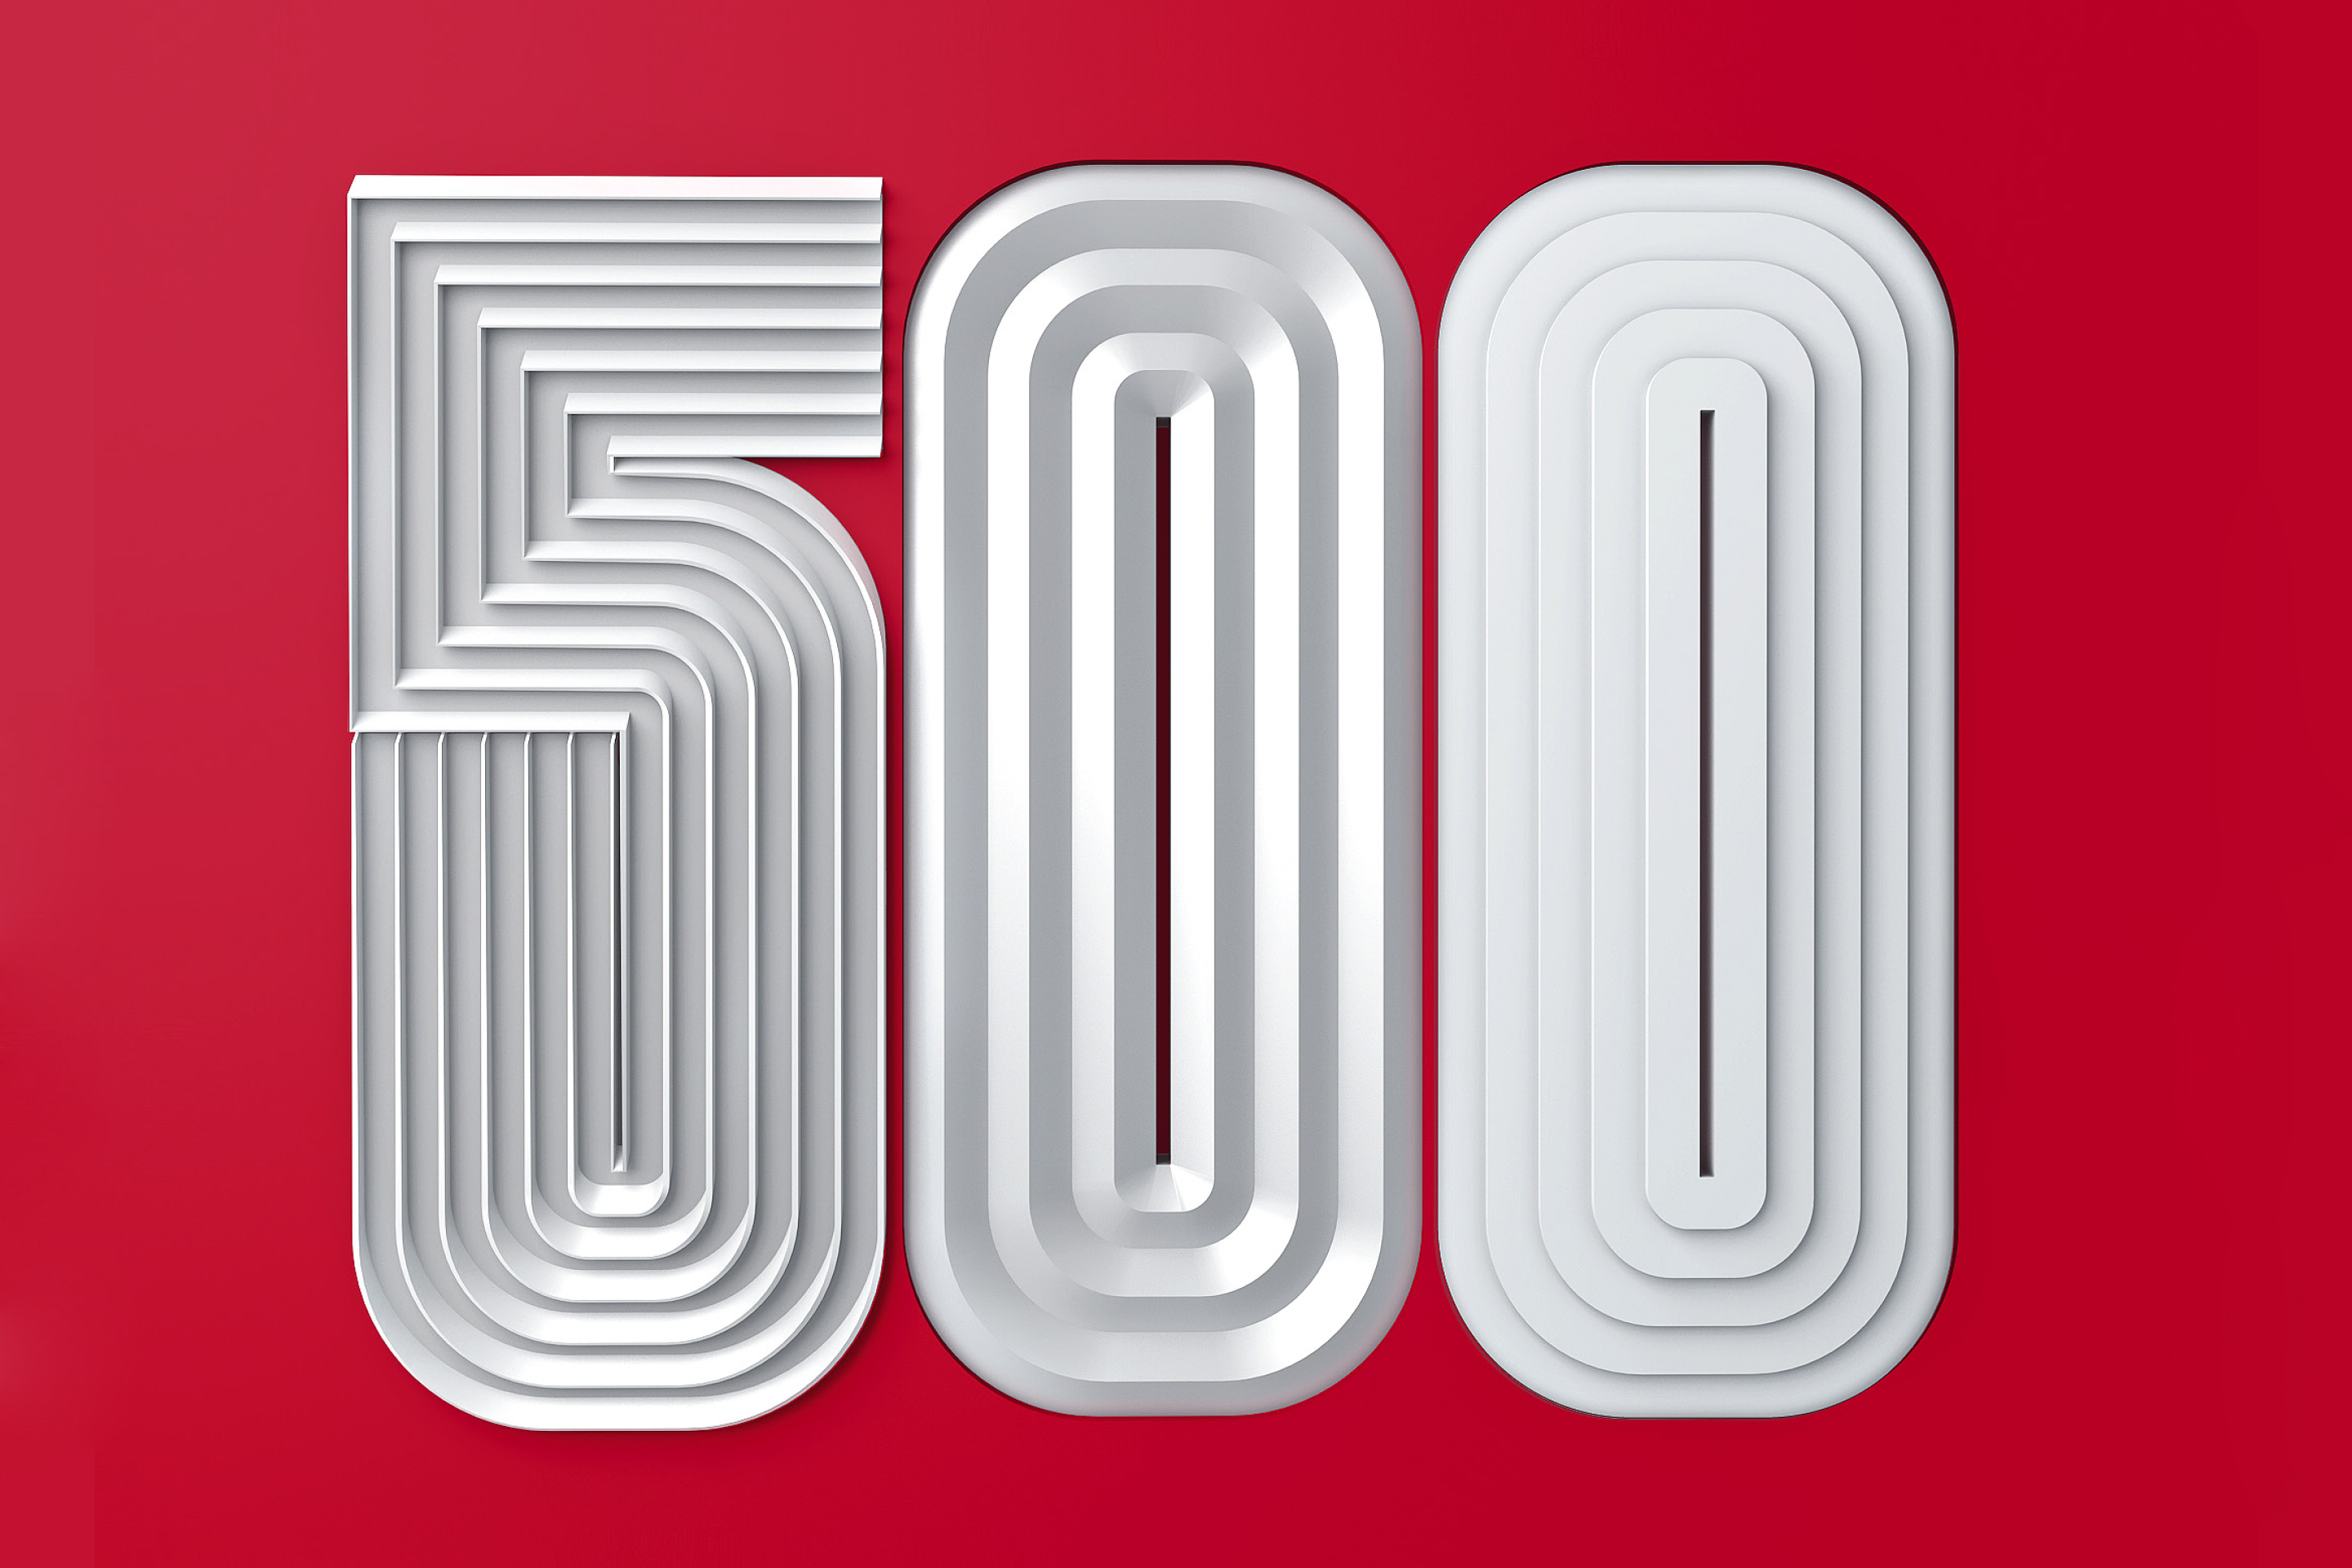 Fortune 500 Companies 2018: Introducing the New List | Fortune